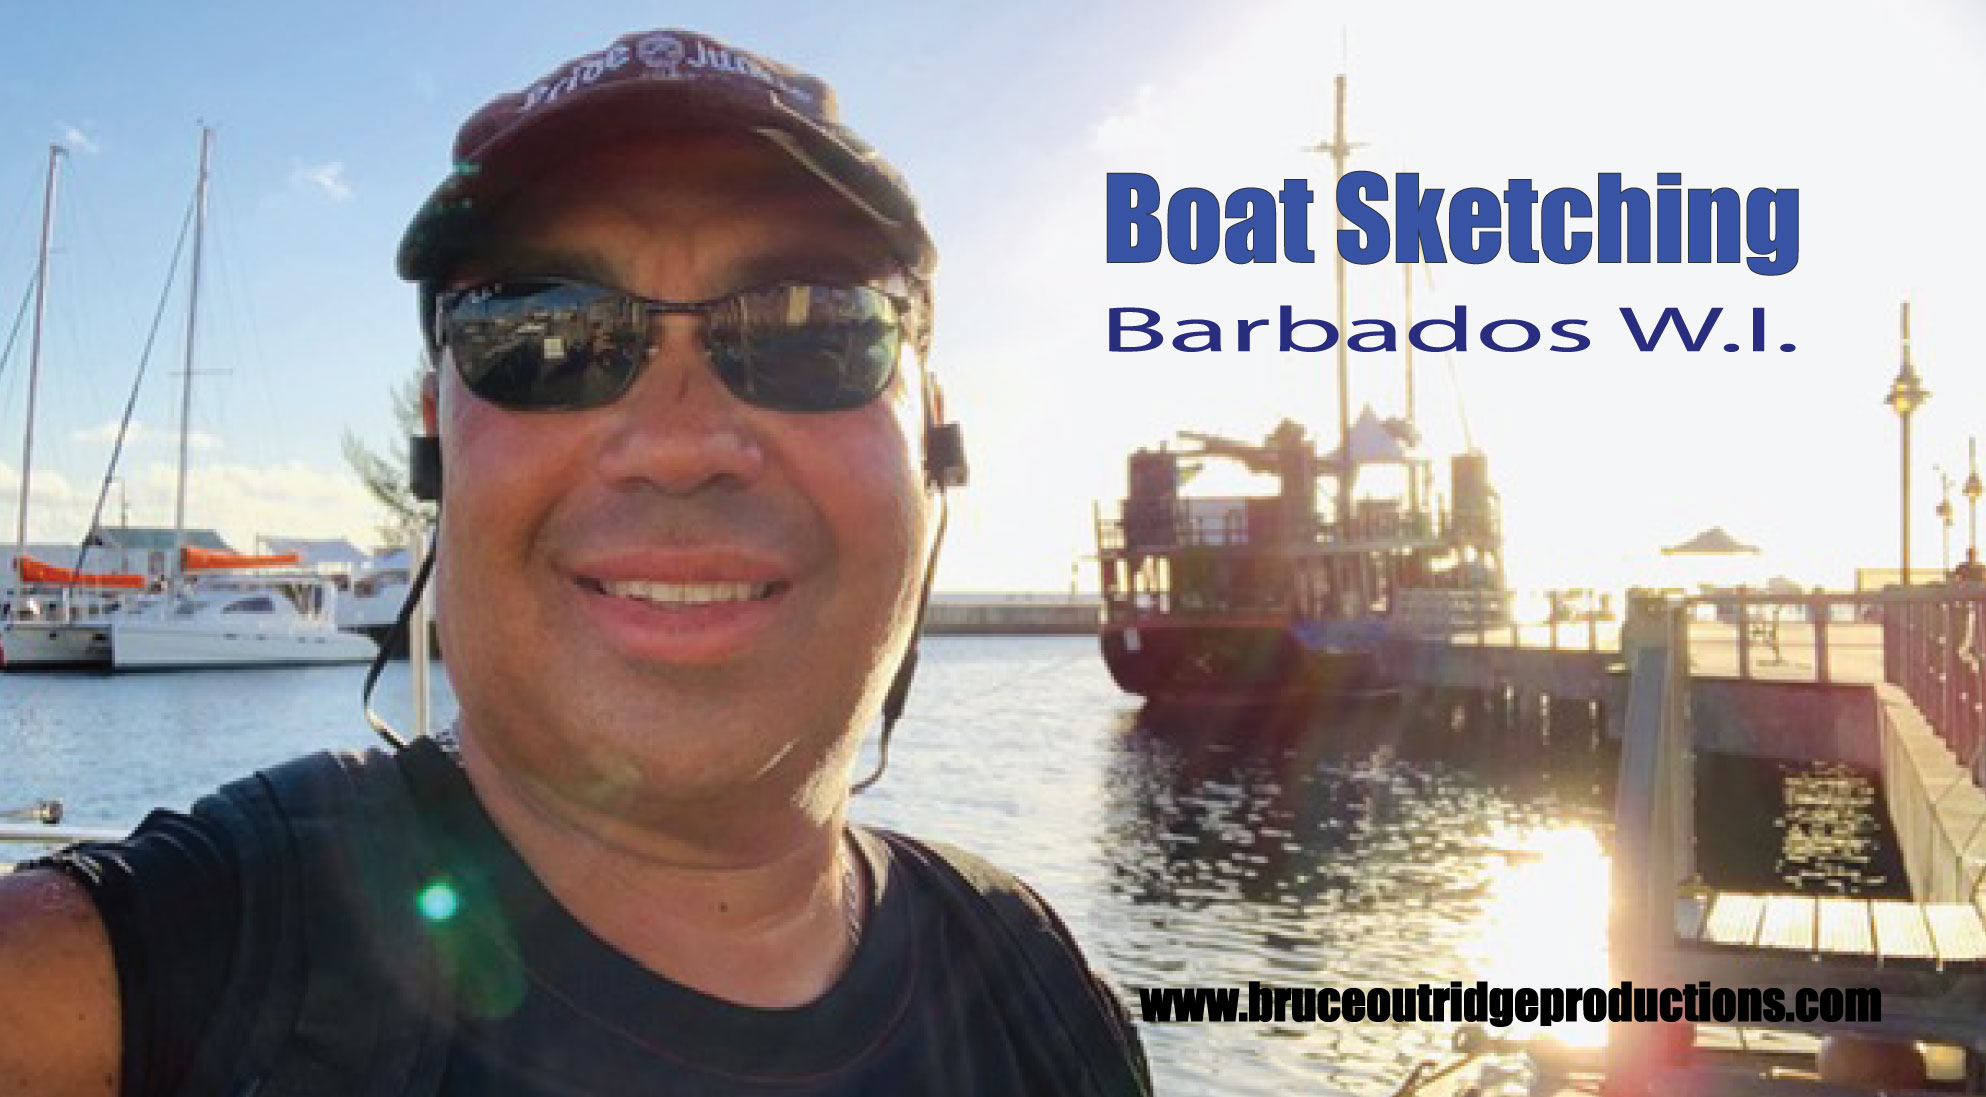 Boat Sketching in Bridgetown Barbados W.I.